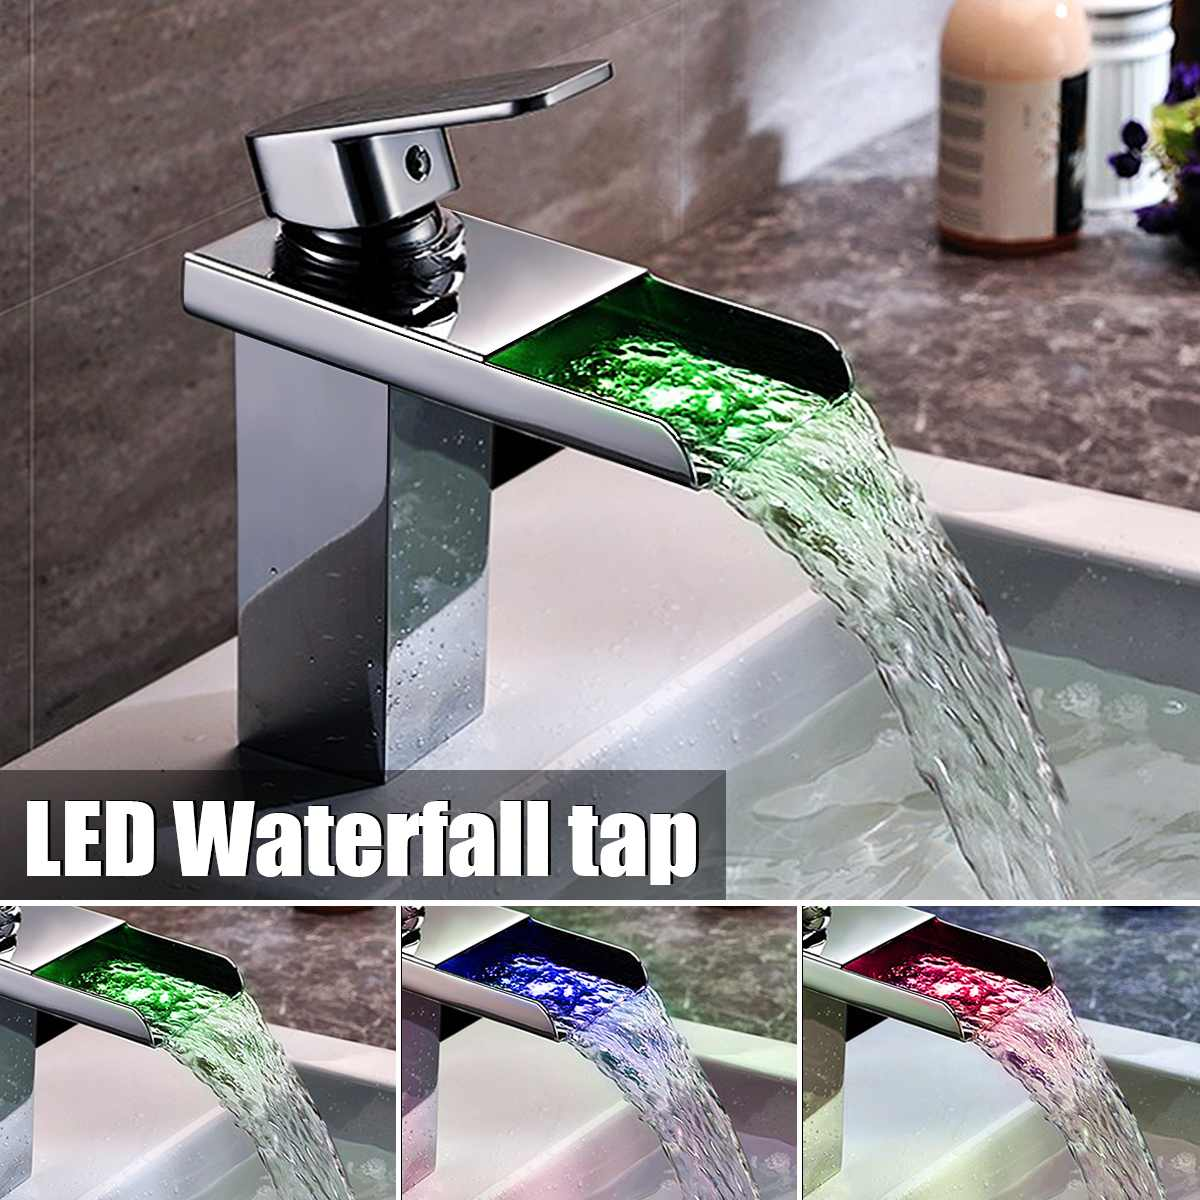 LED Color Waterfall Basin Faucet Chrome Polished Single Handle Faucet Bathroom Bathtub Deck Mounted Cold And Hot Water Mixer Tap